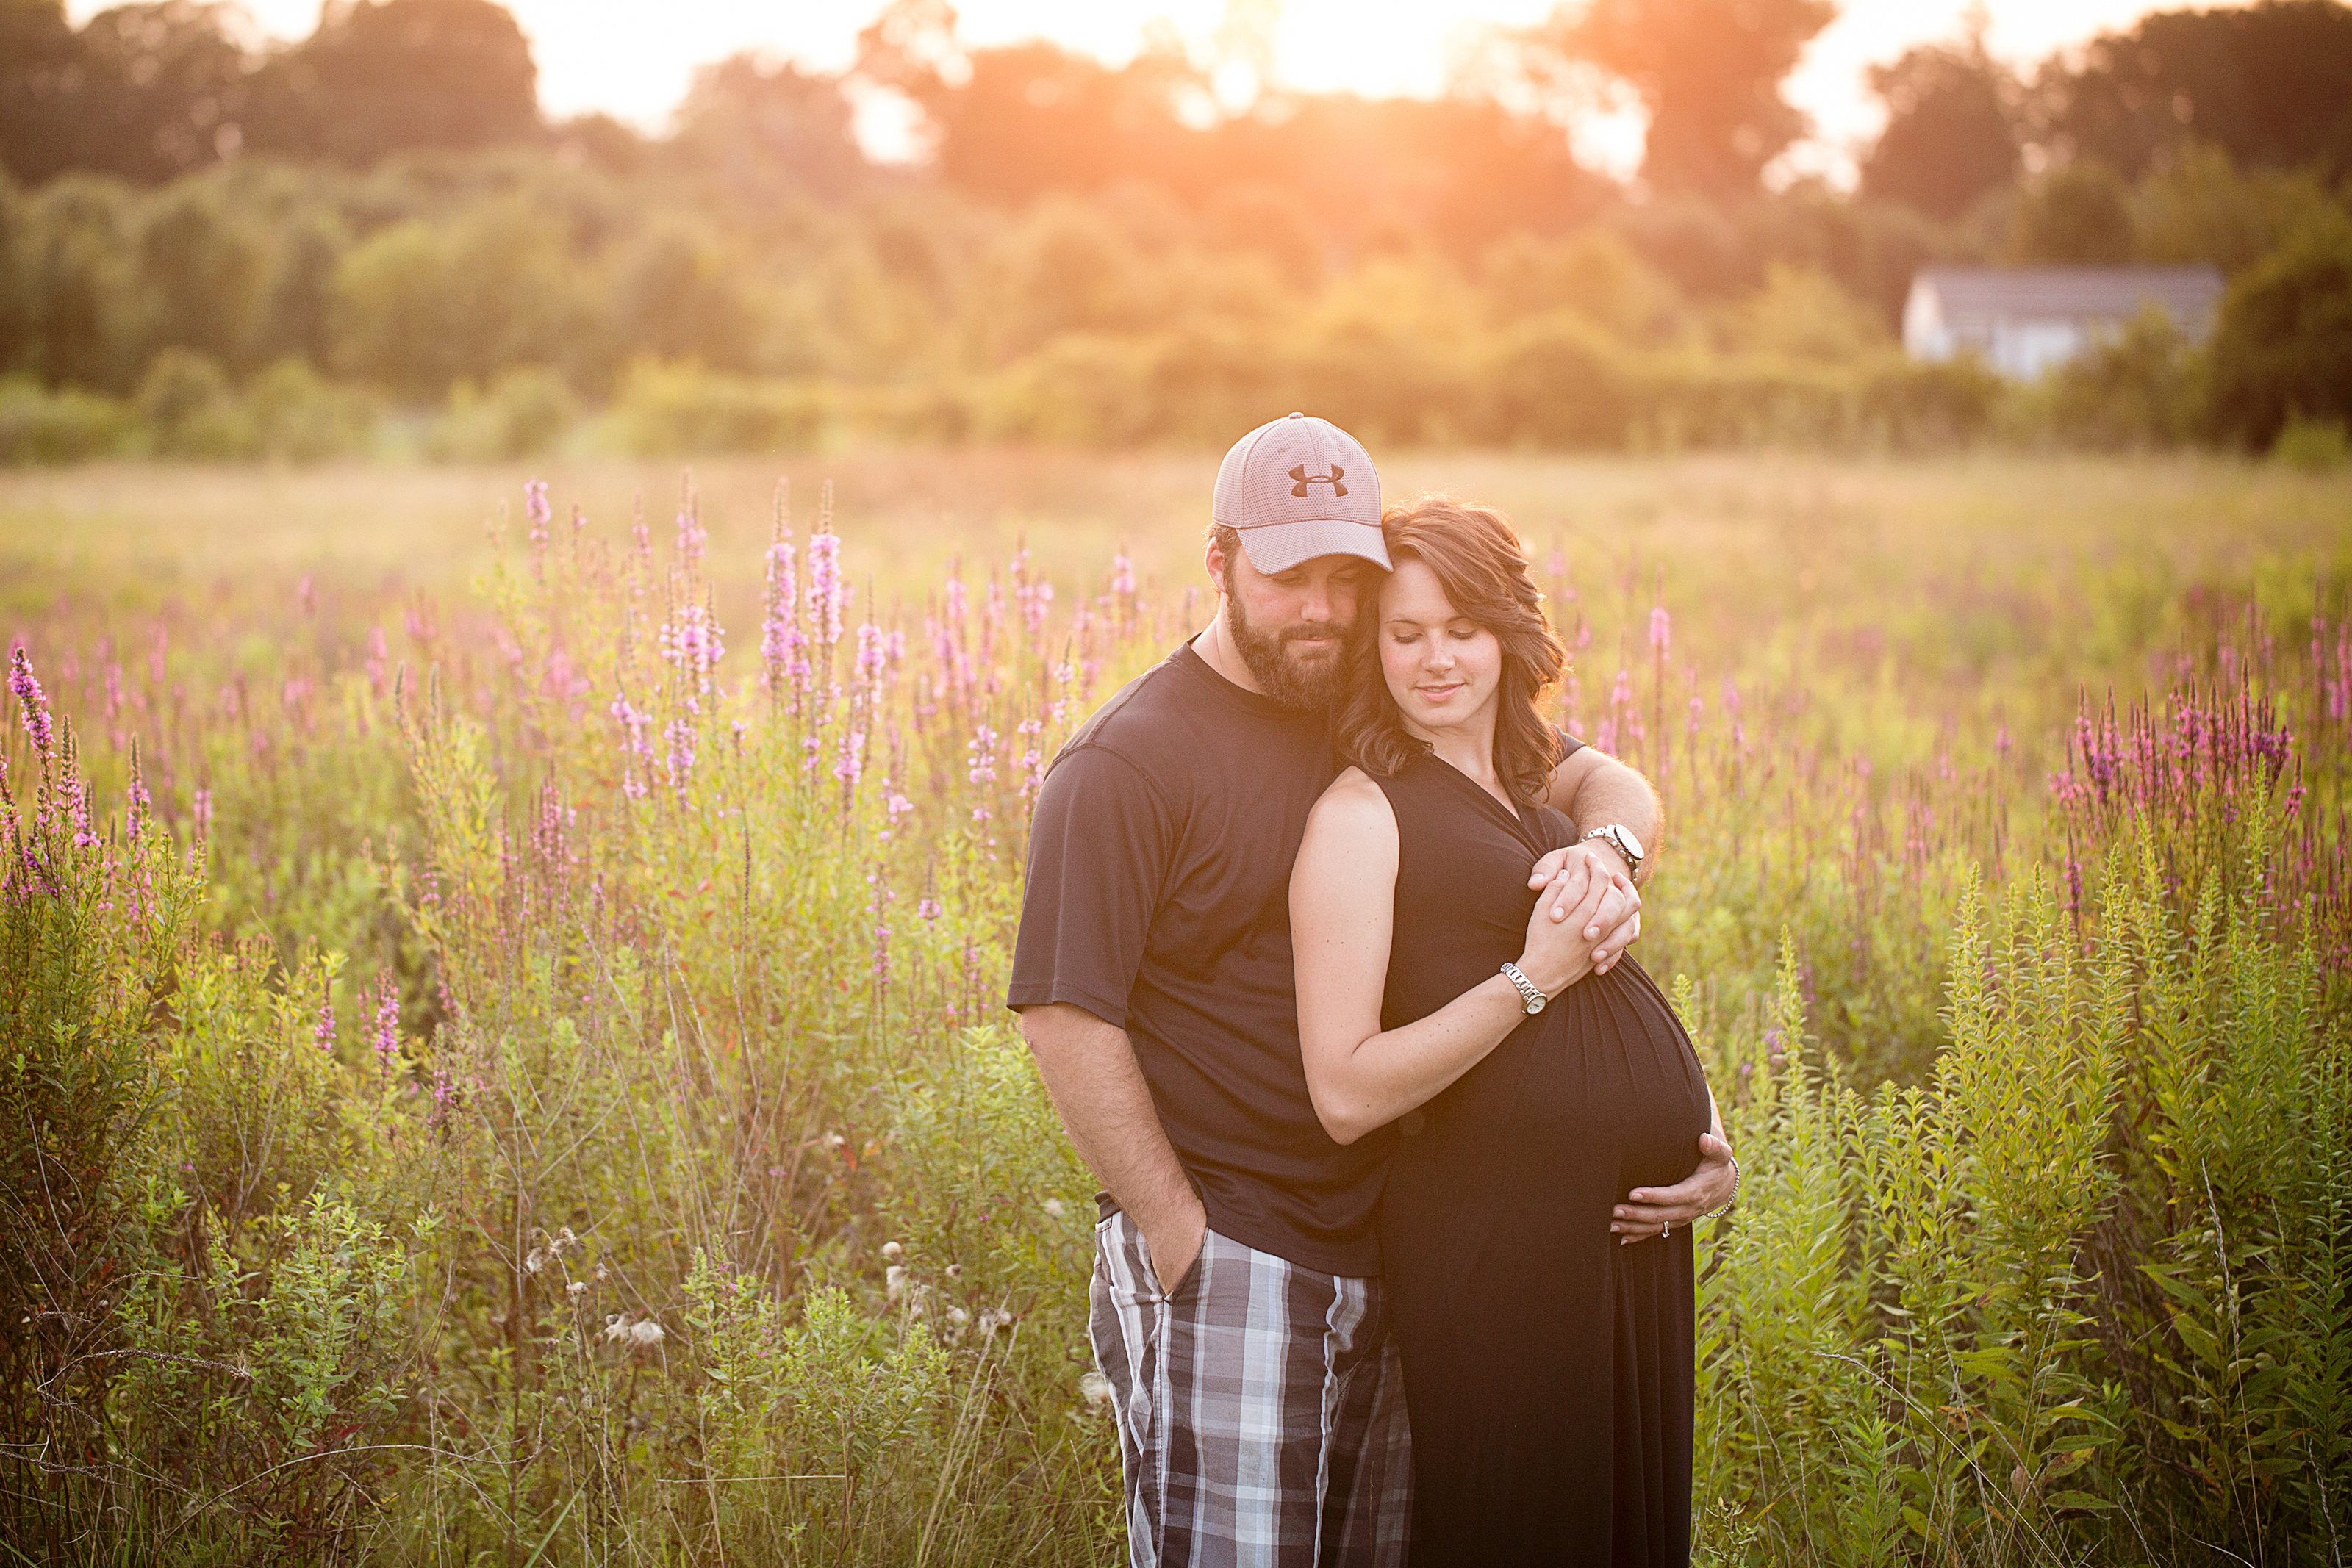 Lancsater maternity couple wear black outfits photo in purple flower field